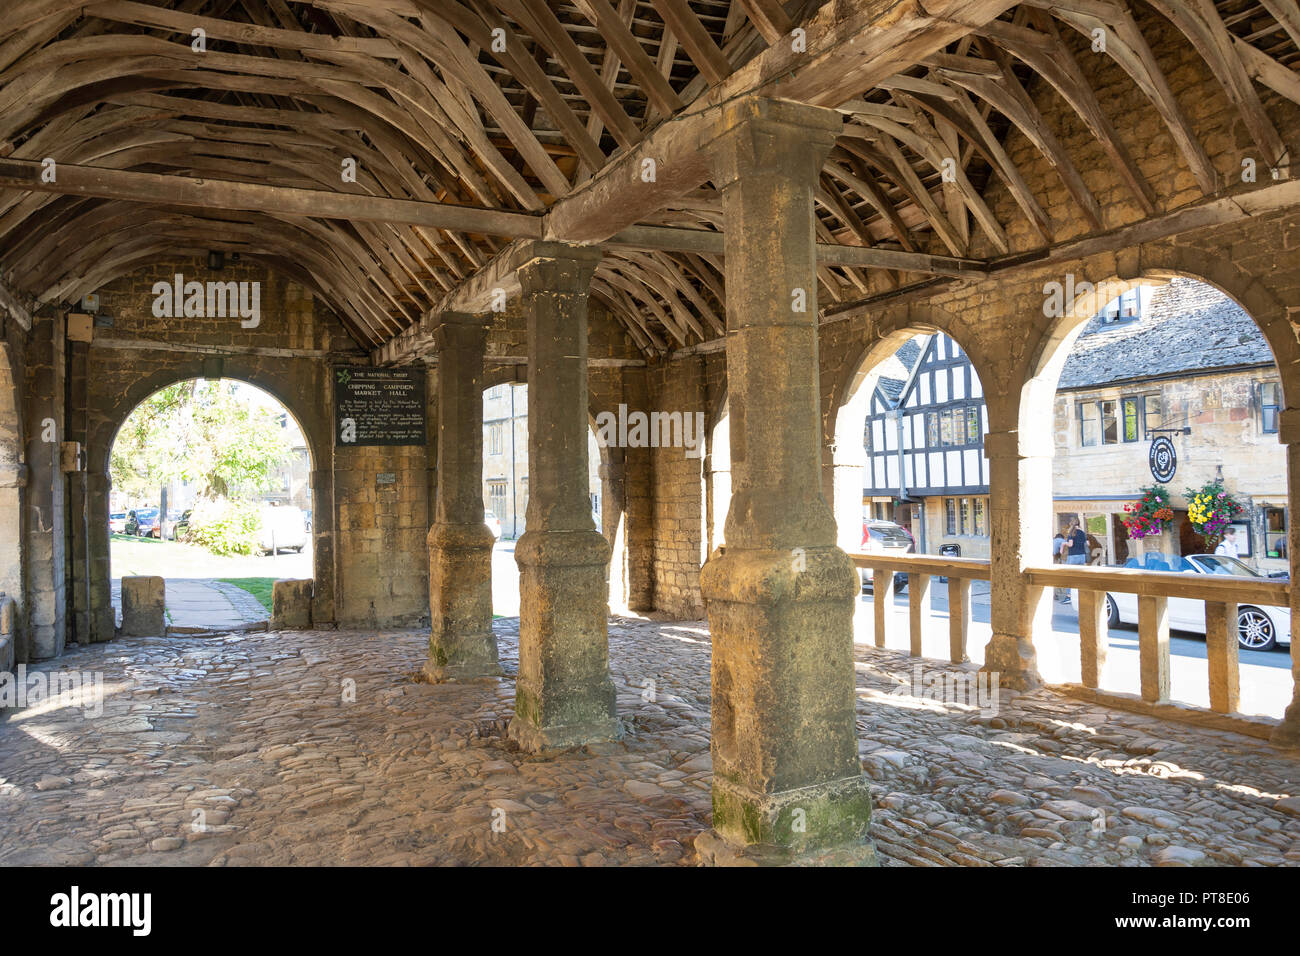 Interior of medieval Market Hall, High Street, Chipping Campden, Gloucestershire, England, United Kingdom - Stock Image